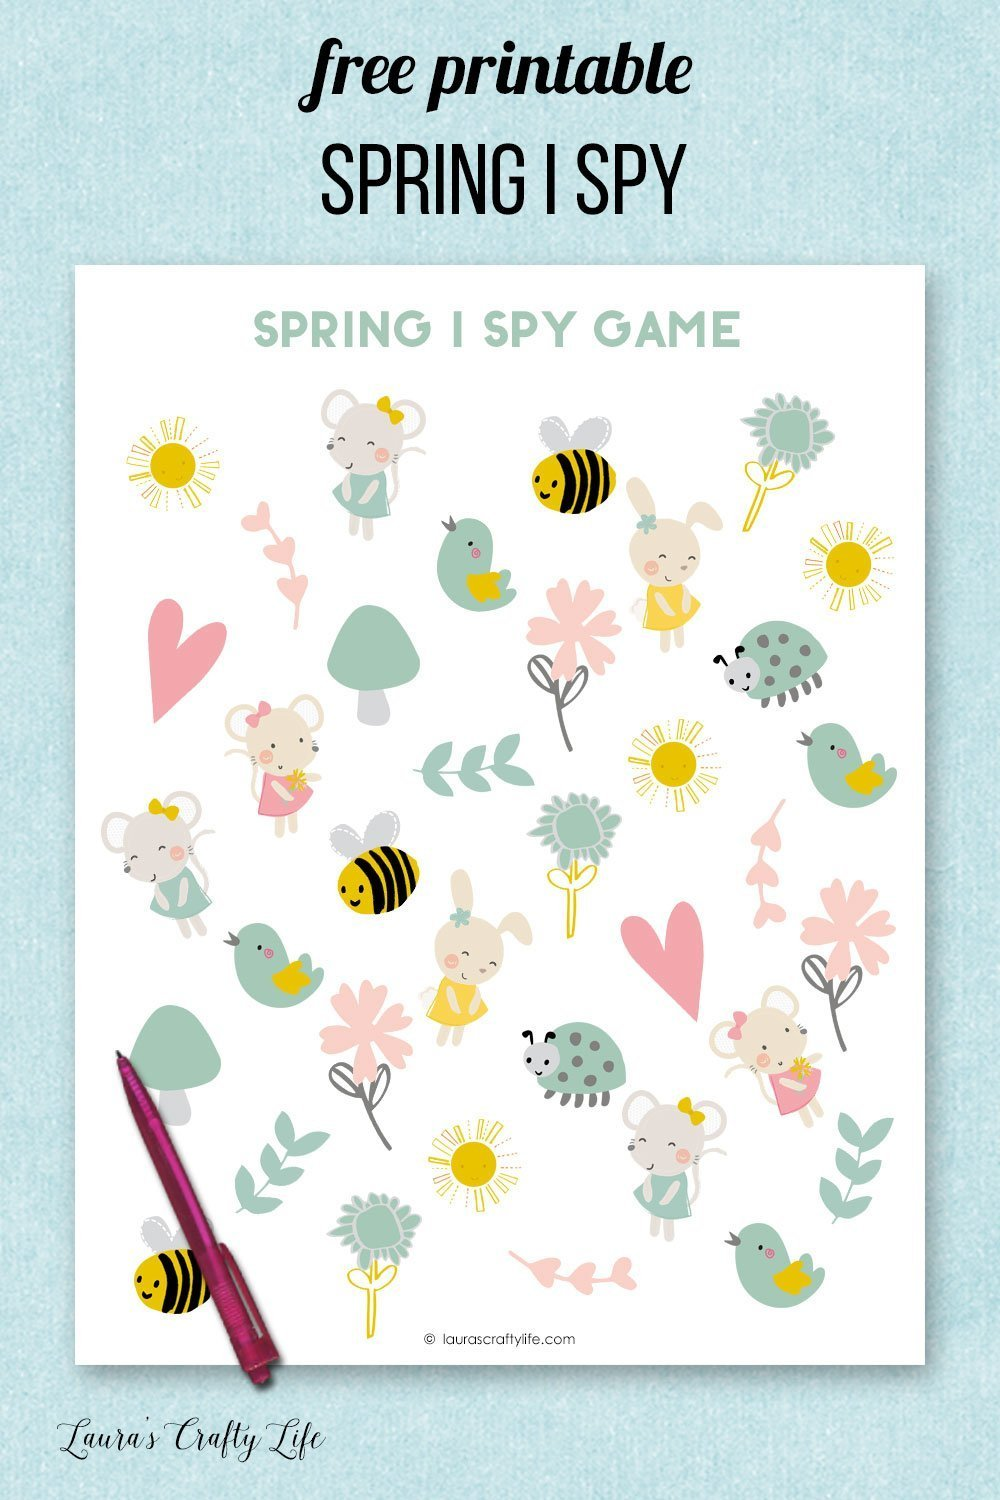 Free printable Spring I Spy game